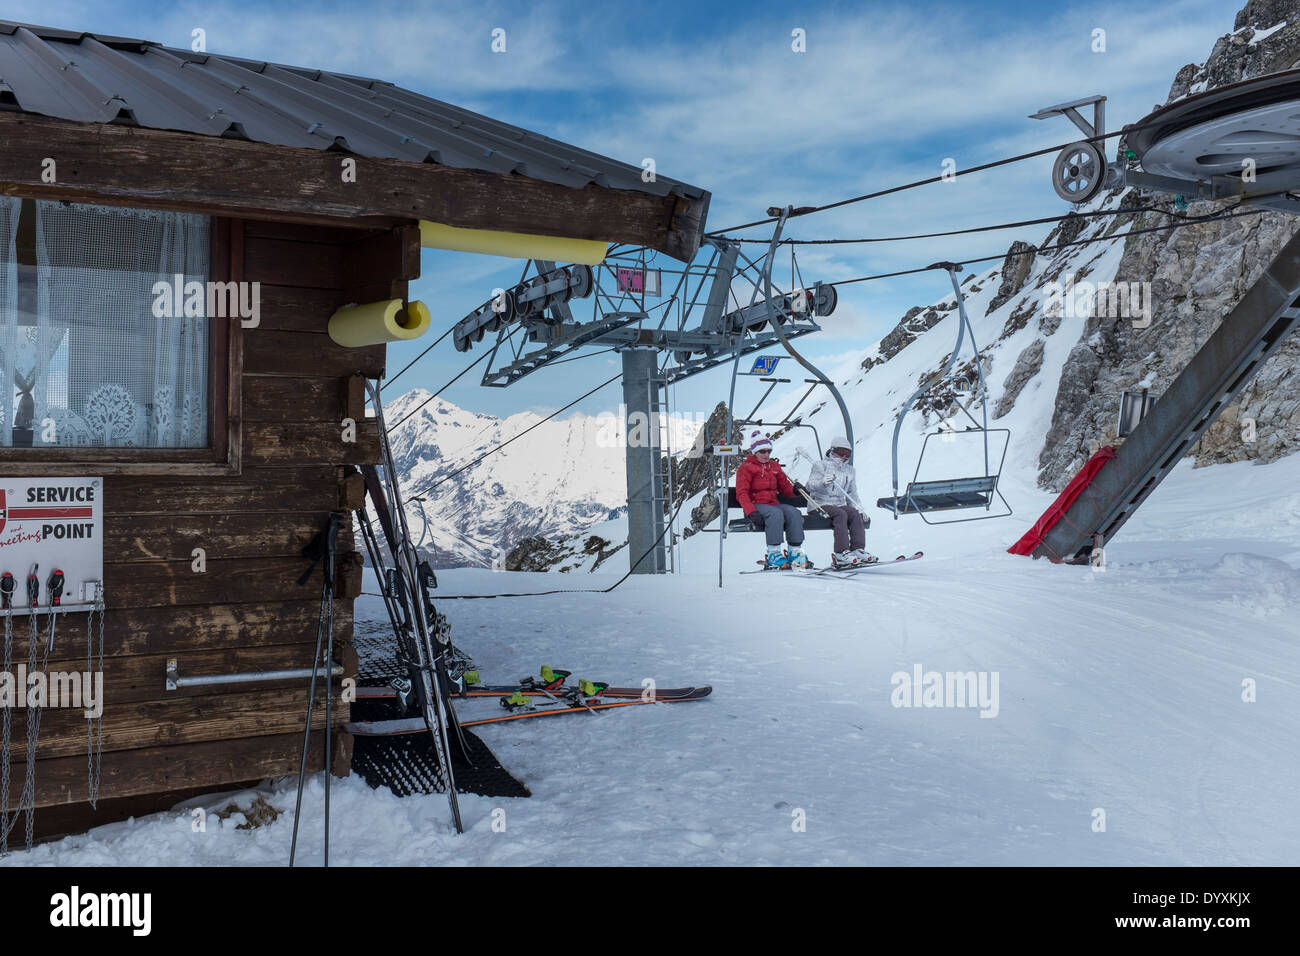 Skiers alight from the Grand Renard chairlift in Les Arcs. Stock Photo